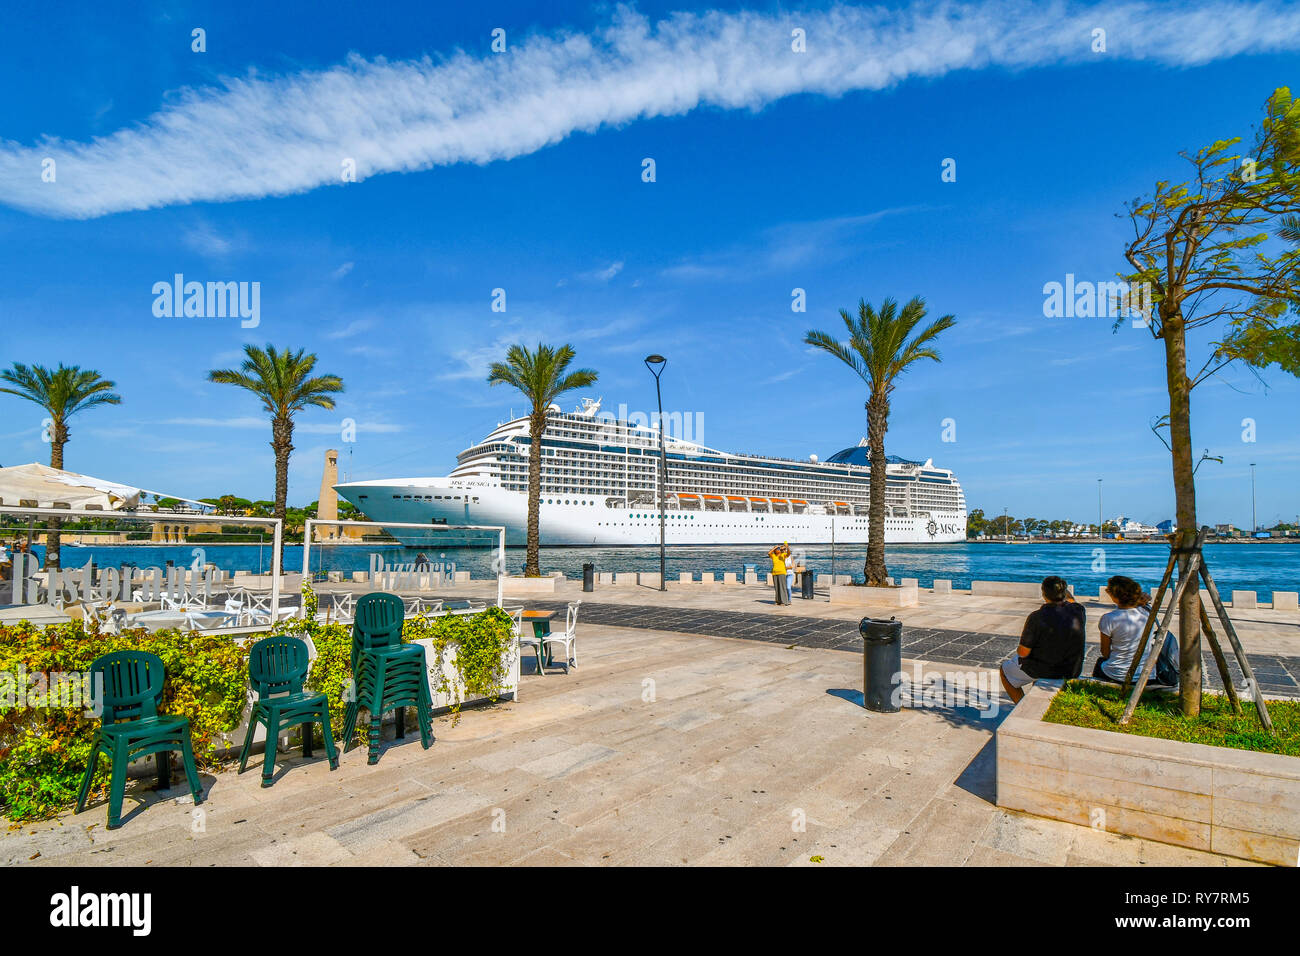 Tourists watch as a massive cruise ship pulls into the narrow port on the Adriatic Sea in the mediterranean city of Brindisi, Italy, in Puglia region - Stock Photo